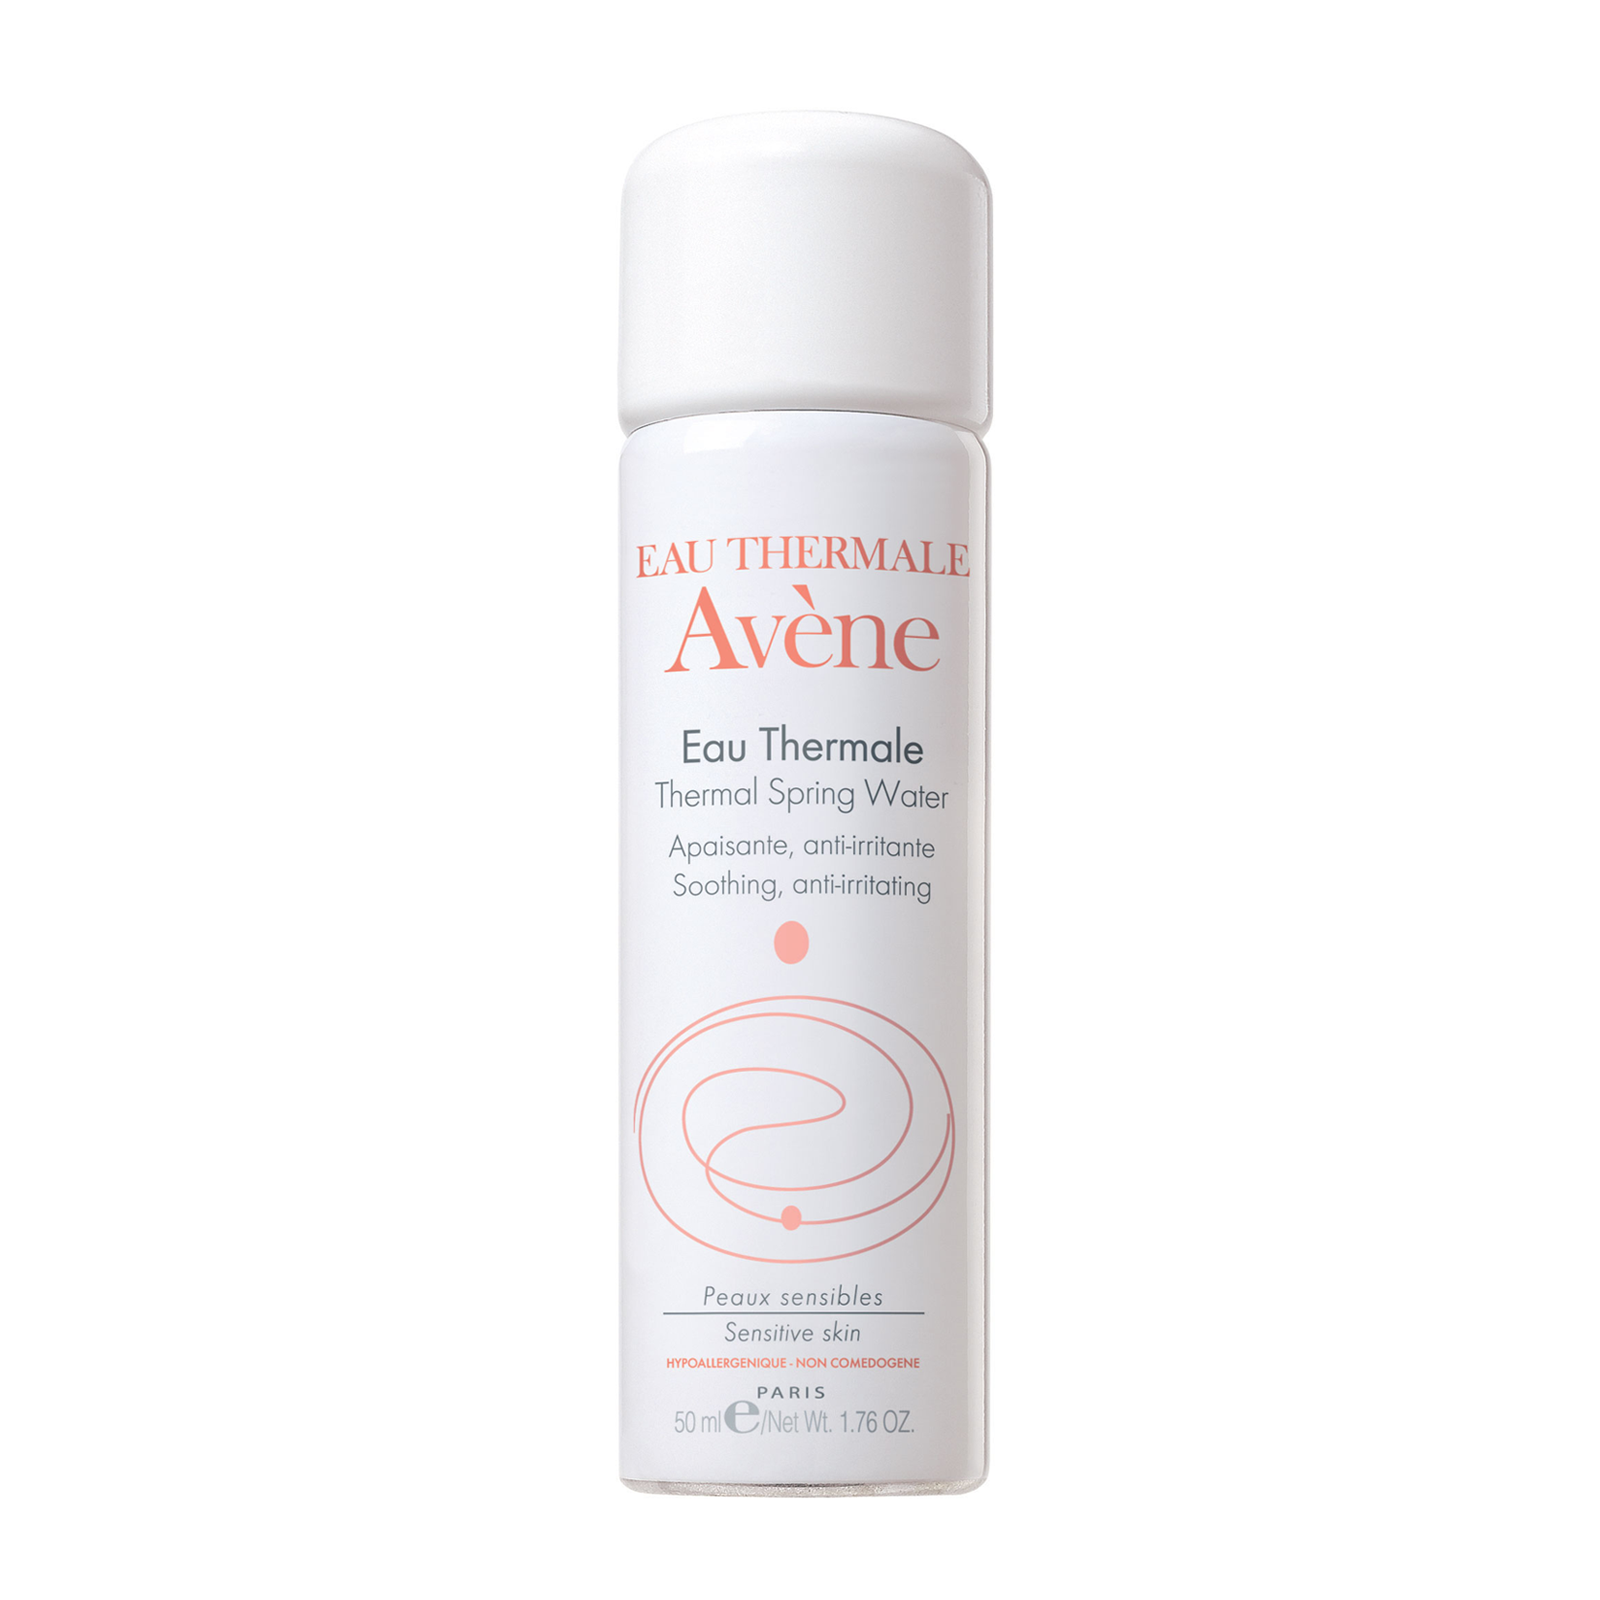 Avene_Eau_Thermale_Thermal_Water_Spray_French_Pharmacy.png